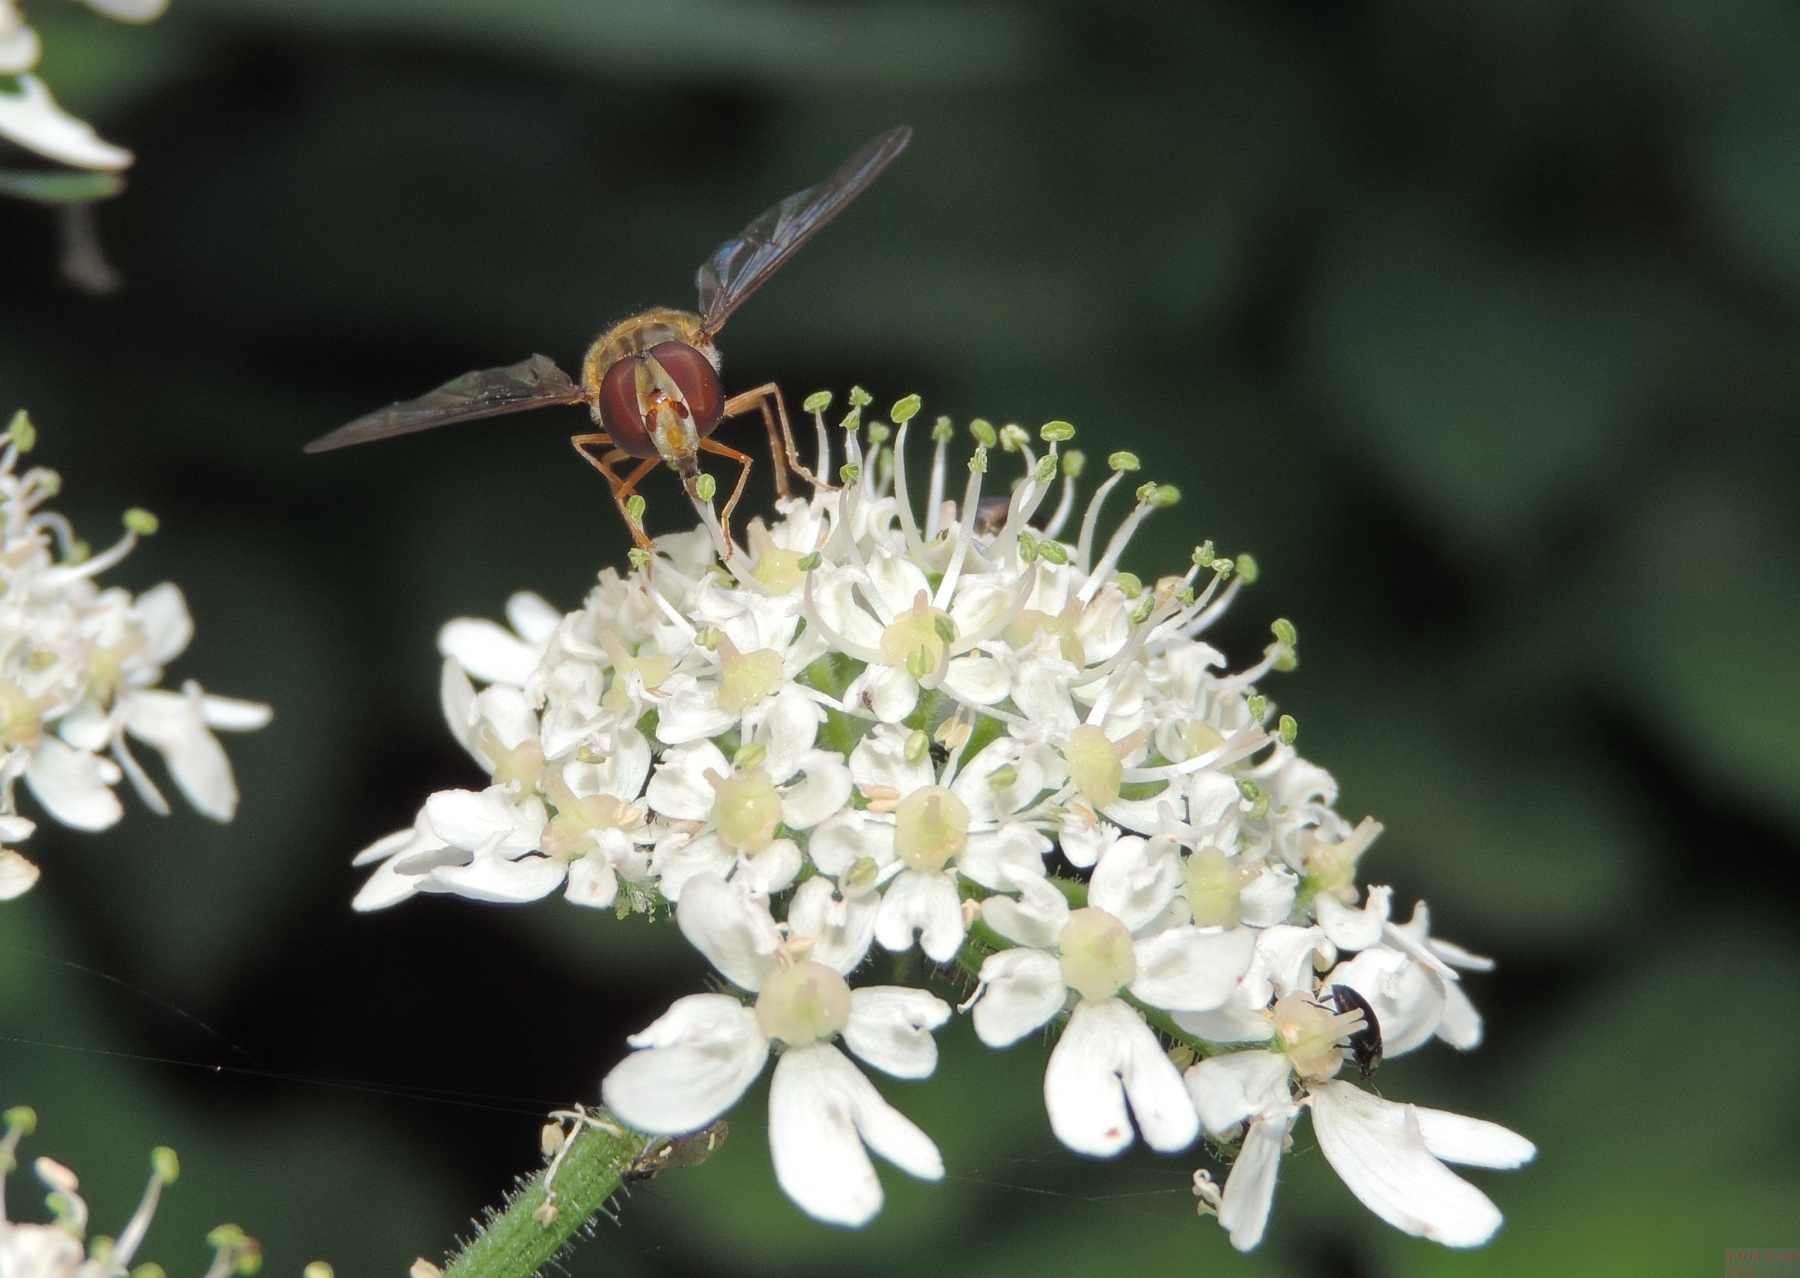 Hoverfly on Hogweed